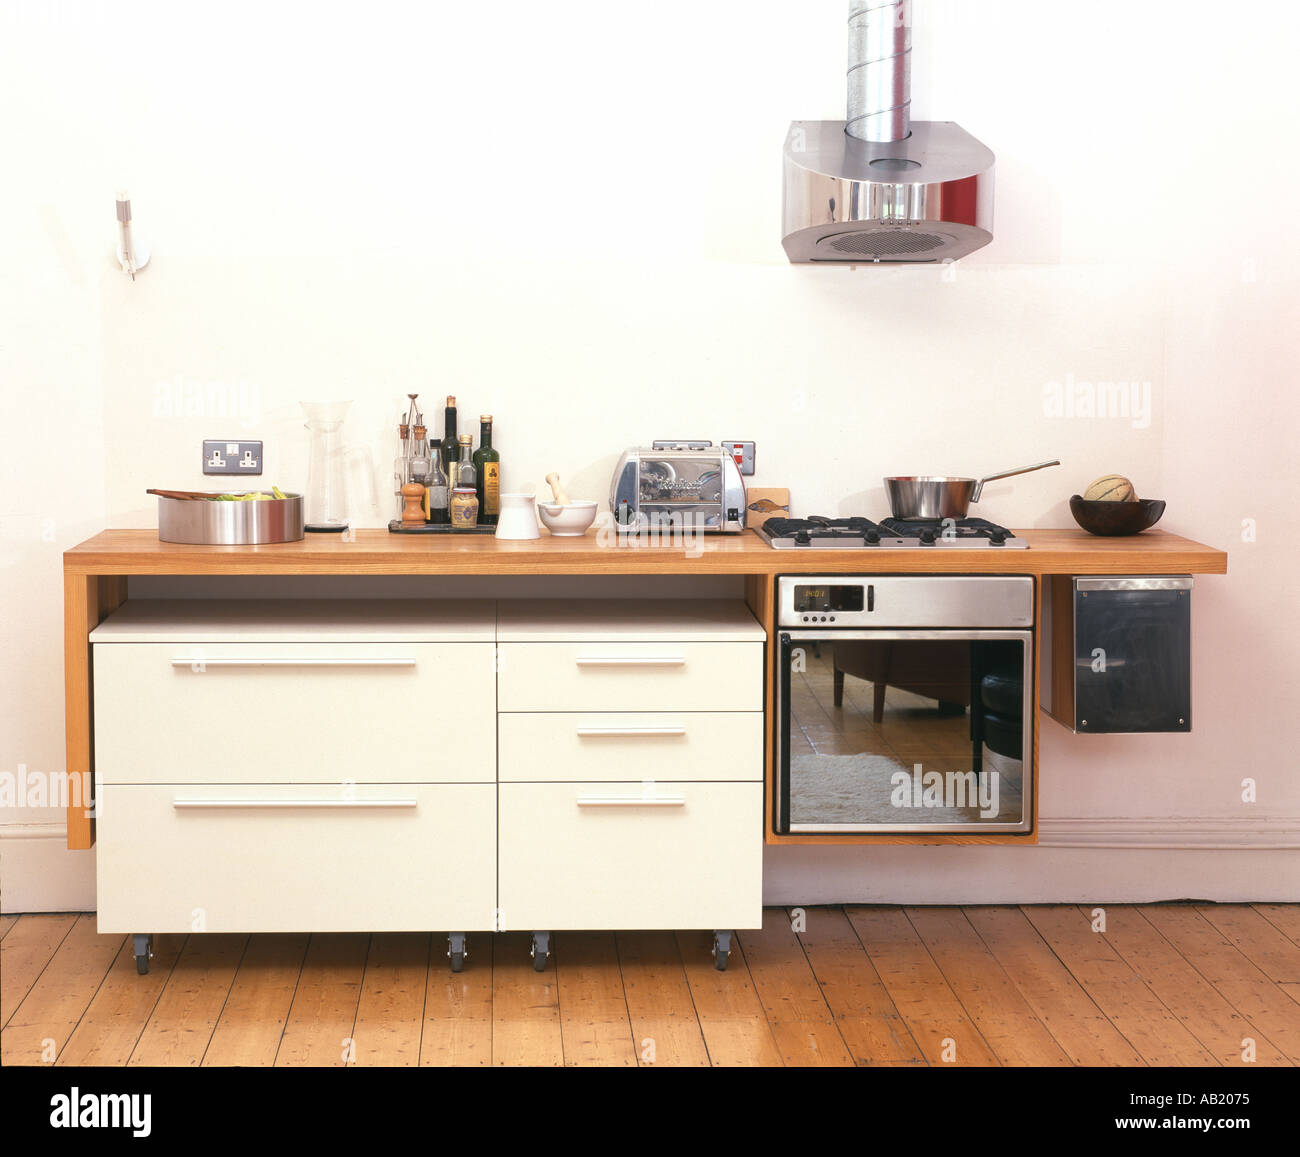 Small Modern Urban Apartment Kitchen, Small Bar Style Worktop And Moveable  Drawers